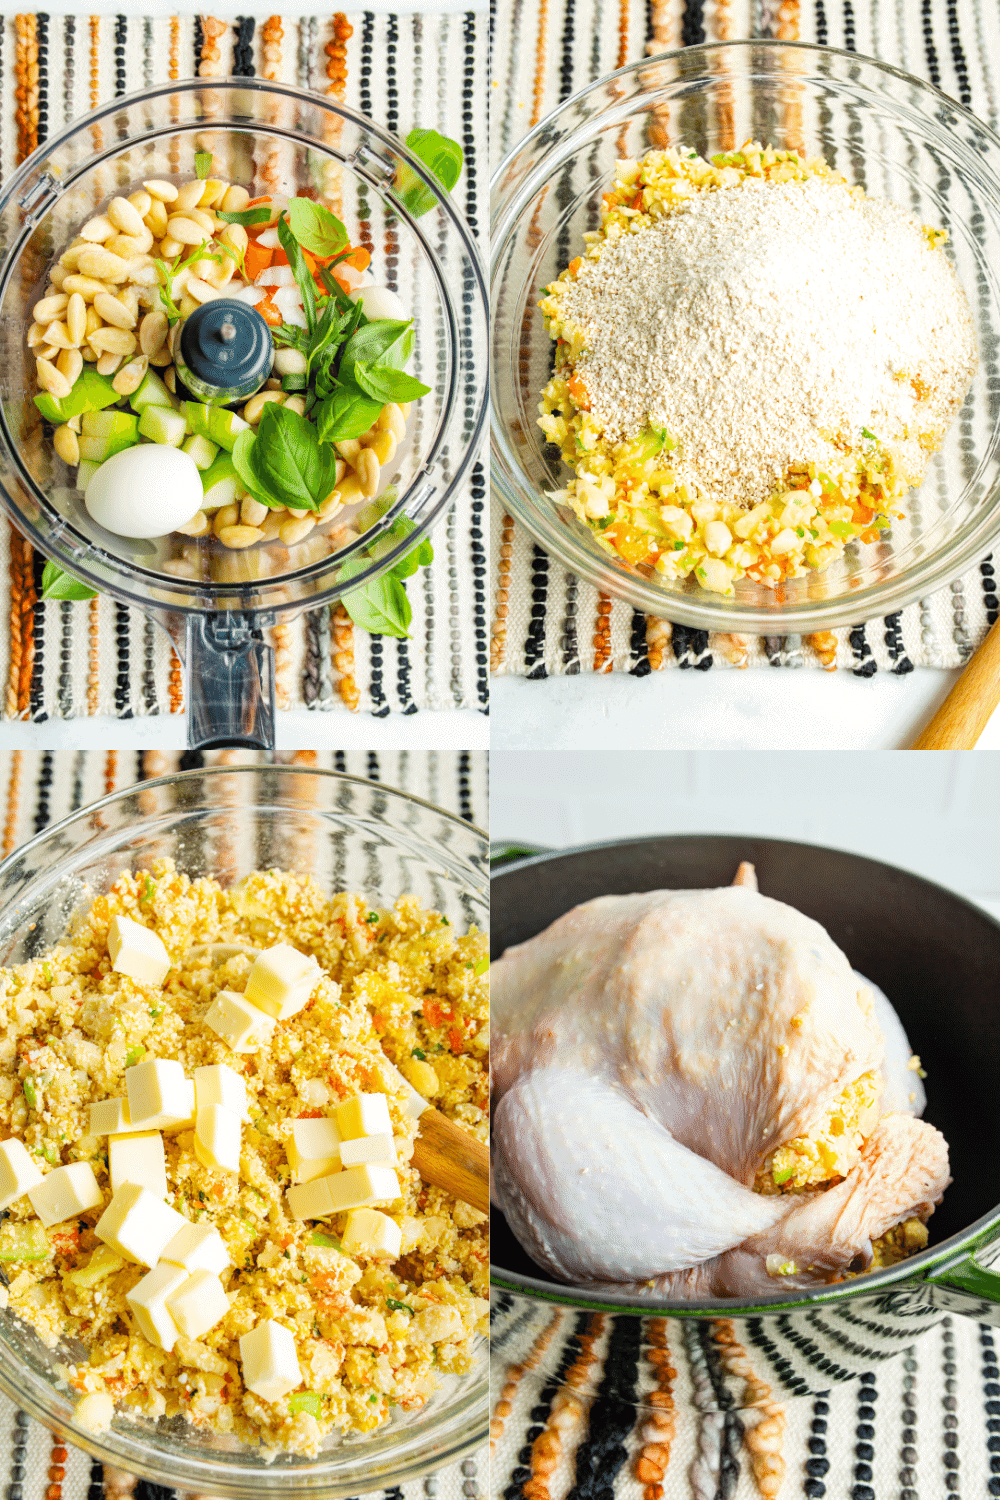 4 pictures that show the steps to make the stuffing; mixing ingredients in food processor, combining ingredients, stuffing the chicken.